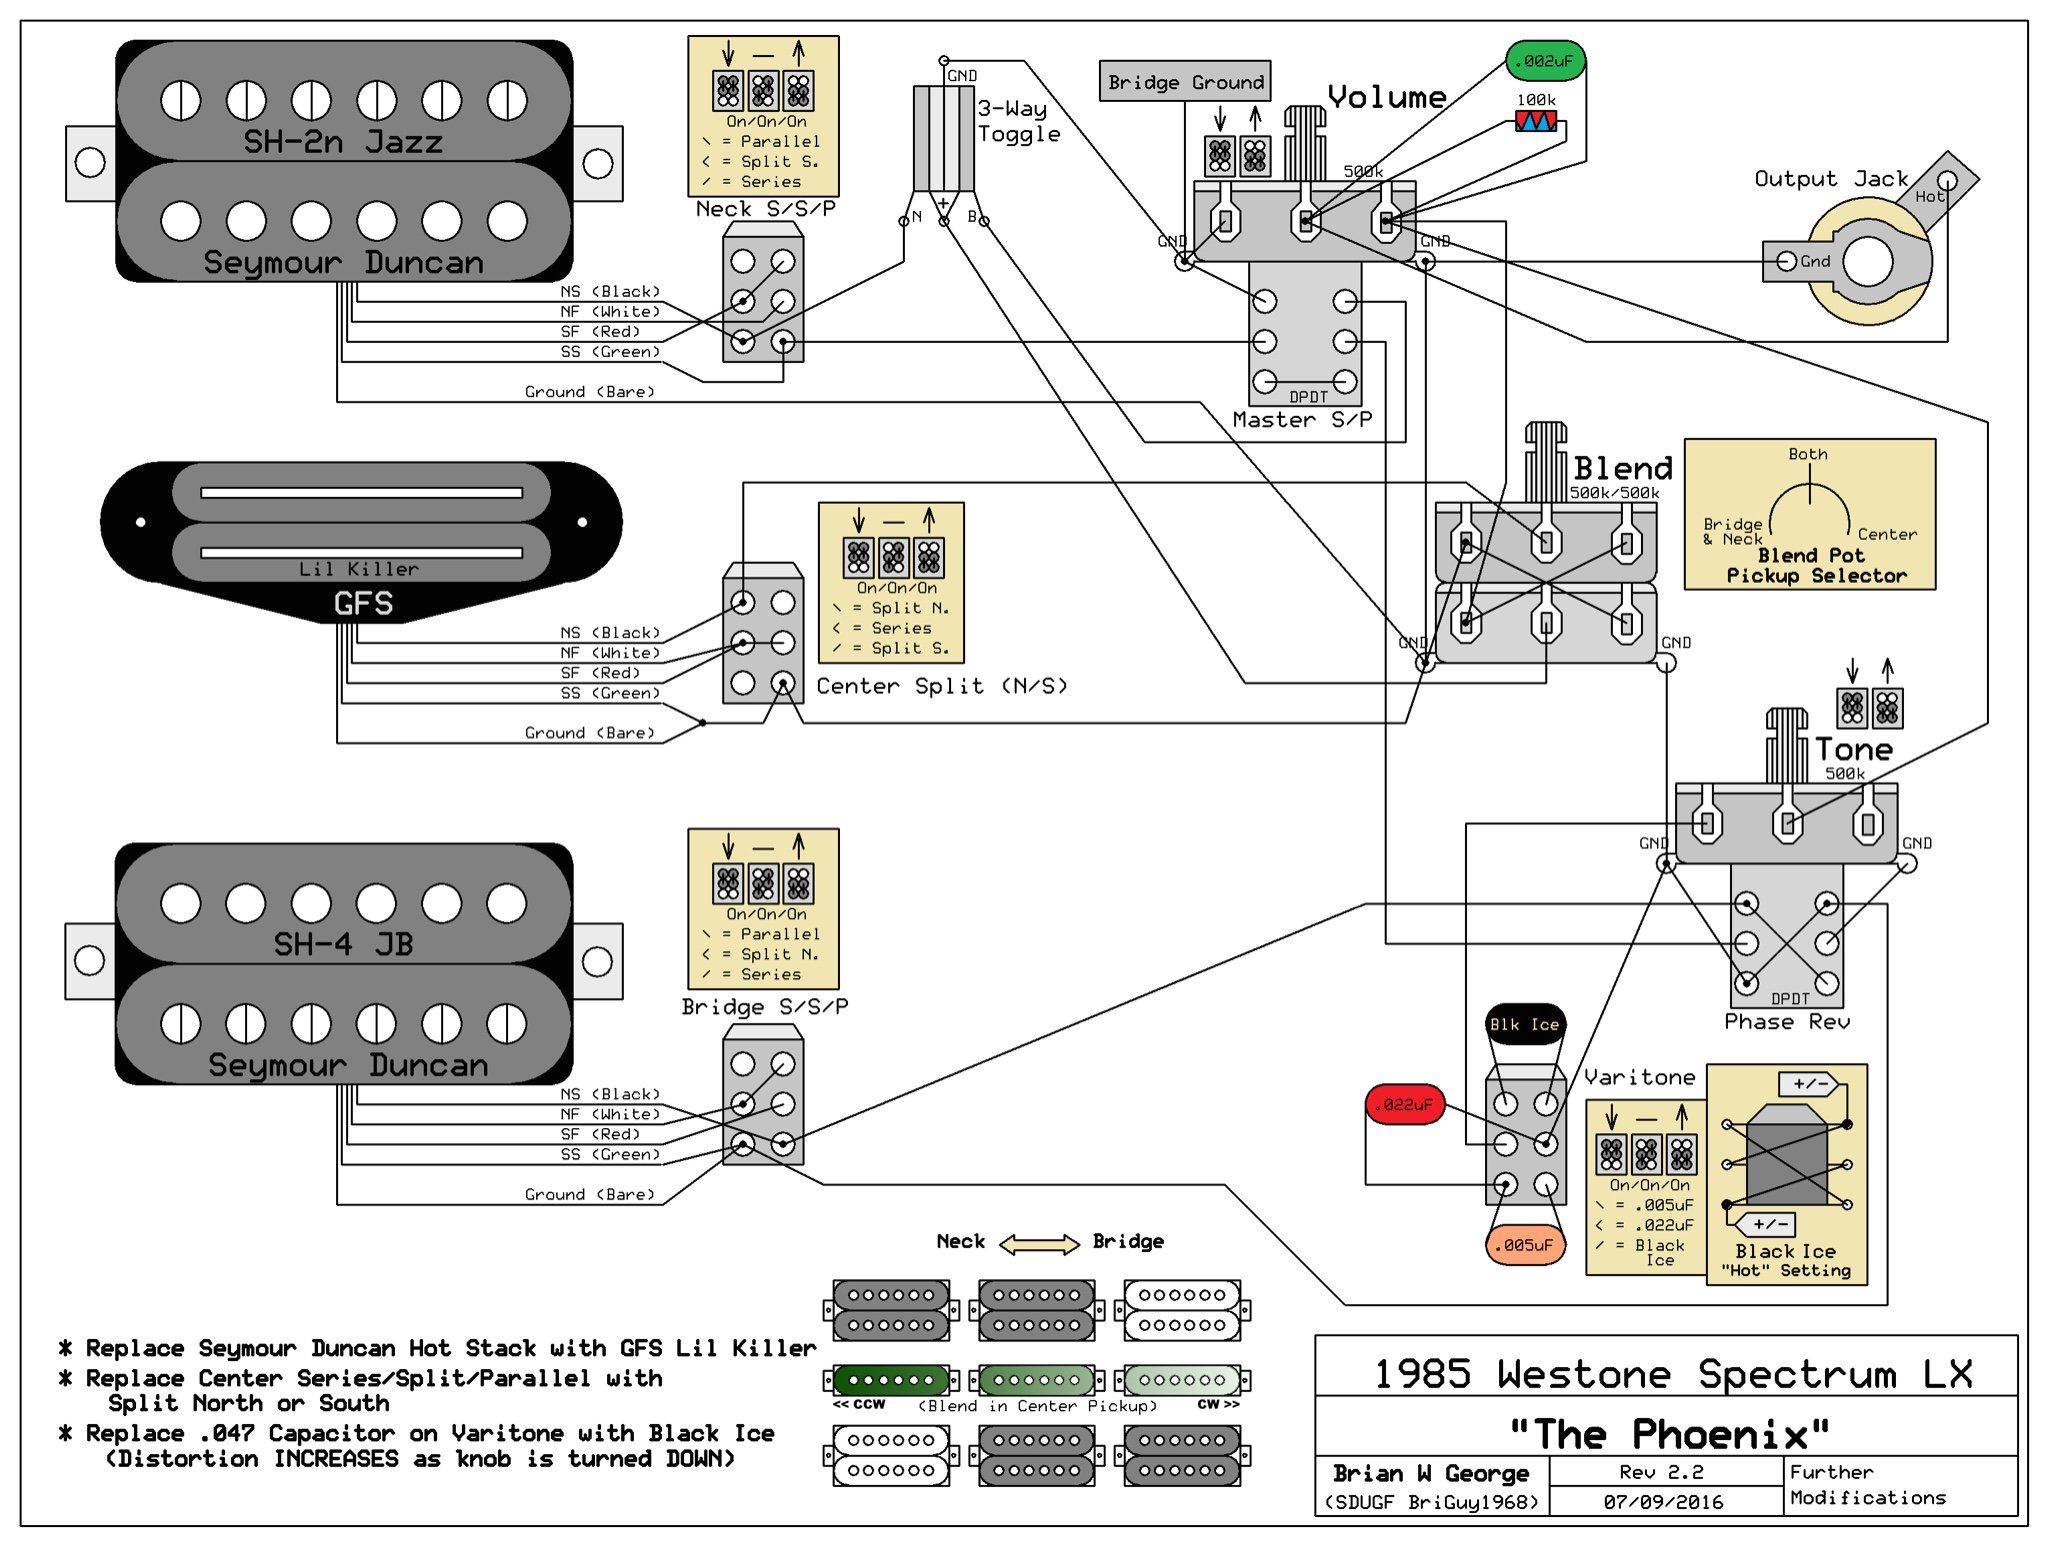 and giggles here s the wiring diagram that s currently in my 85 westone